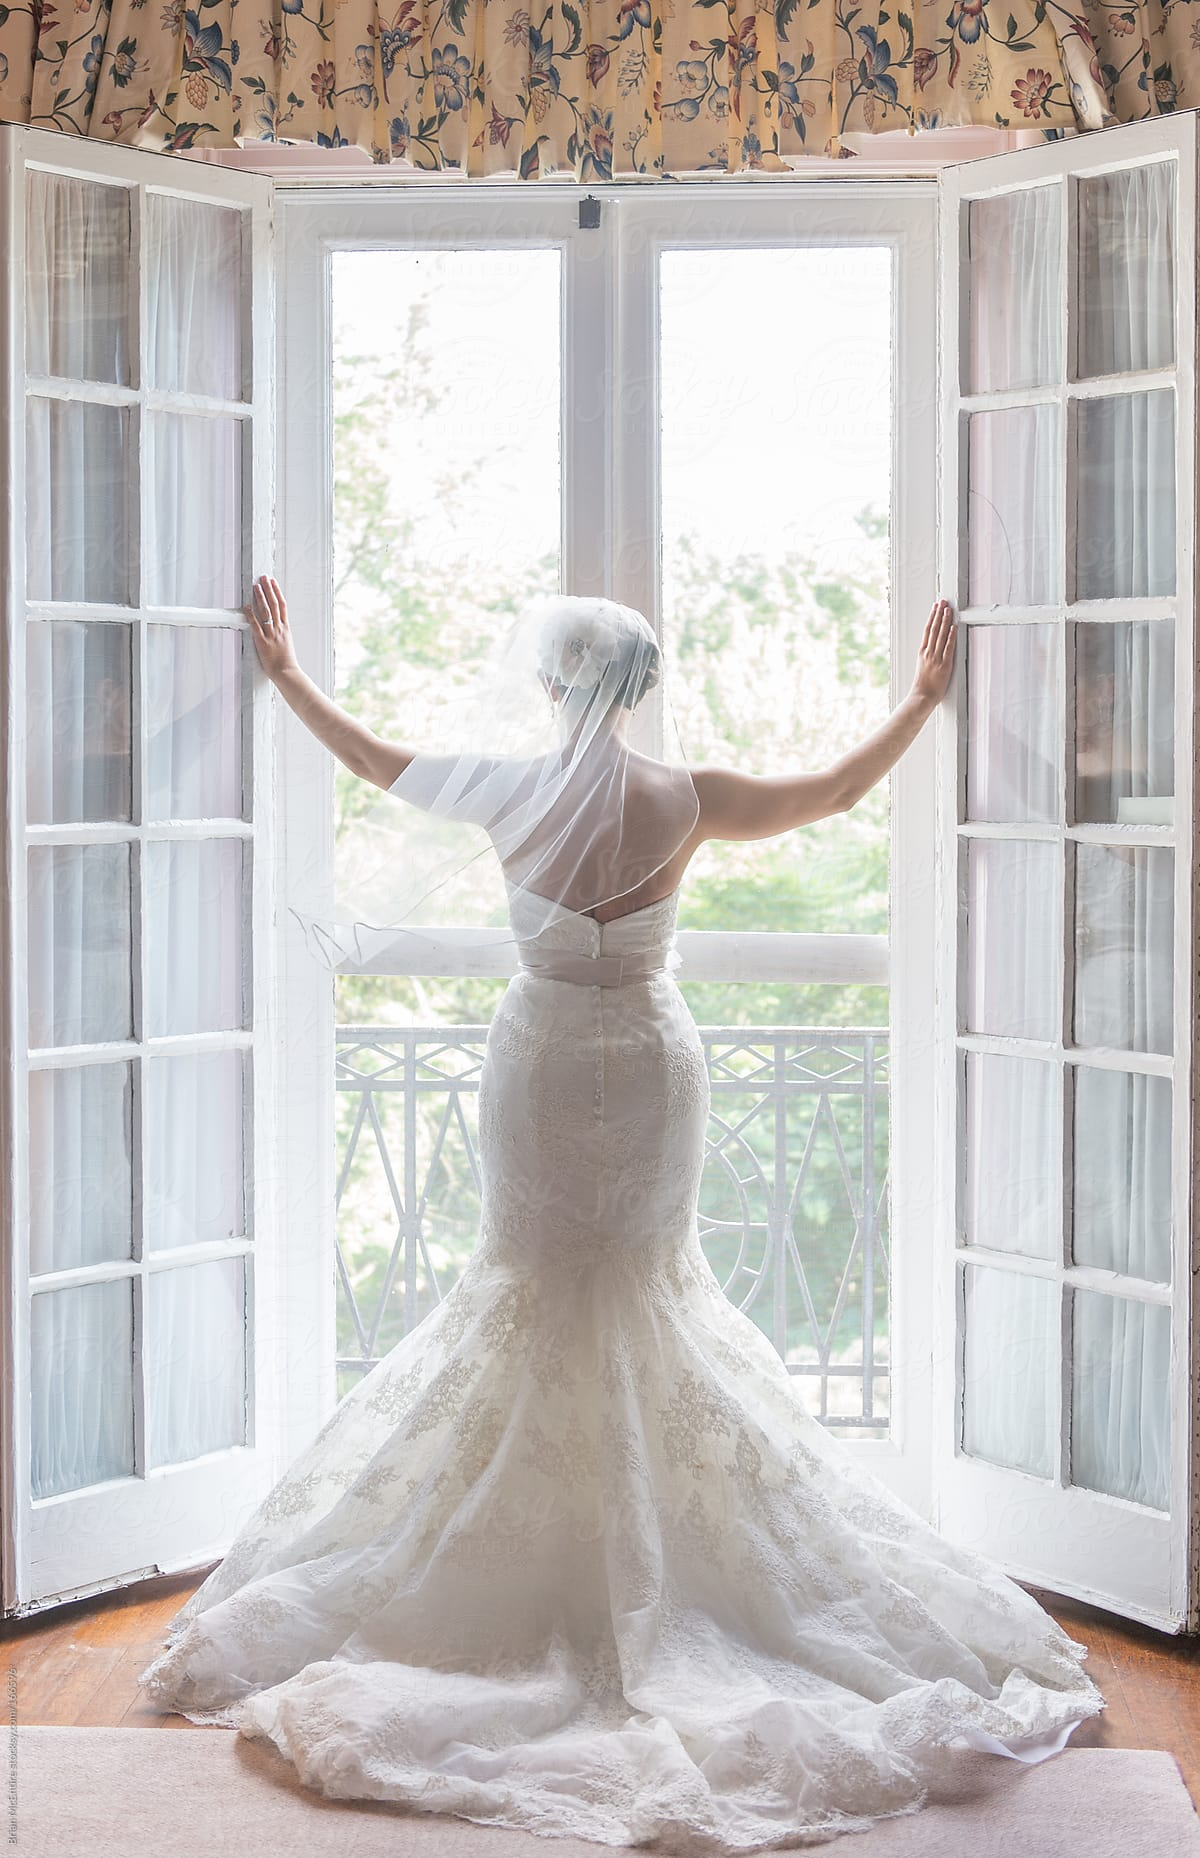 Bride In Classic Wedding Dress Looking Over Balcony Through French